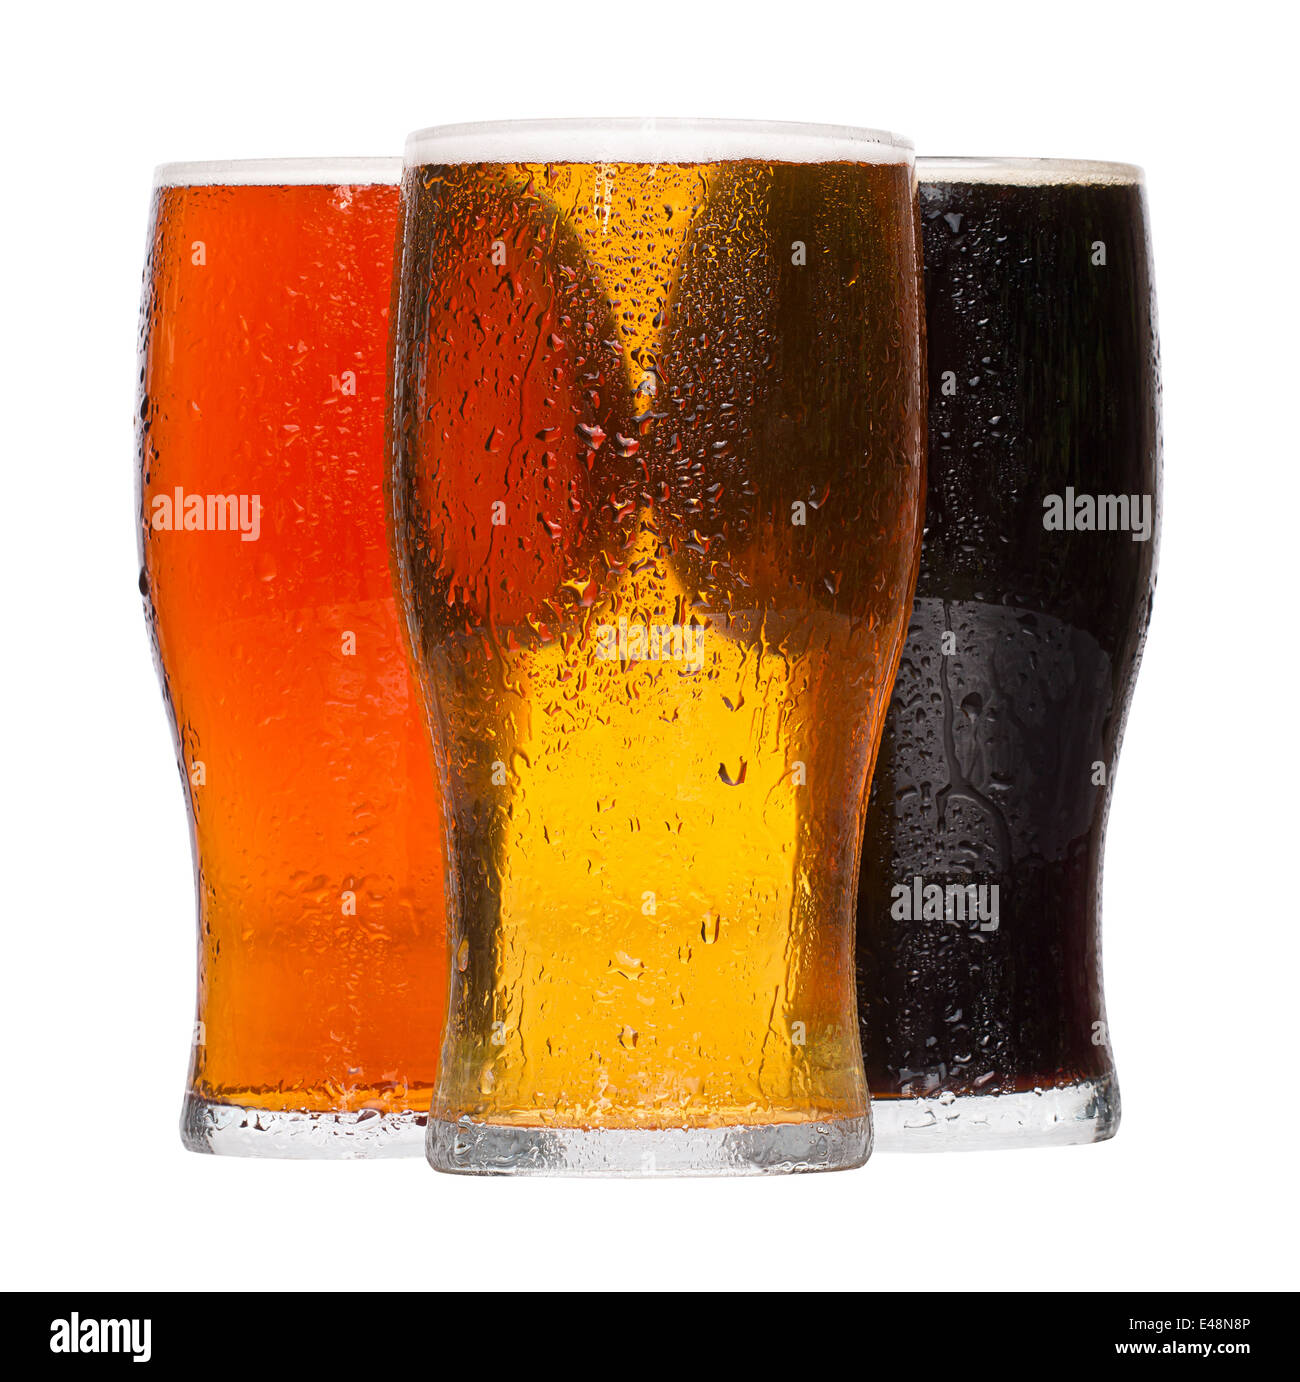 Different chilled refreshing pints of Beer, lager and stout served by the Alcoholic drinks industry - Stock Image